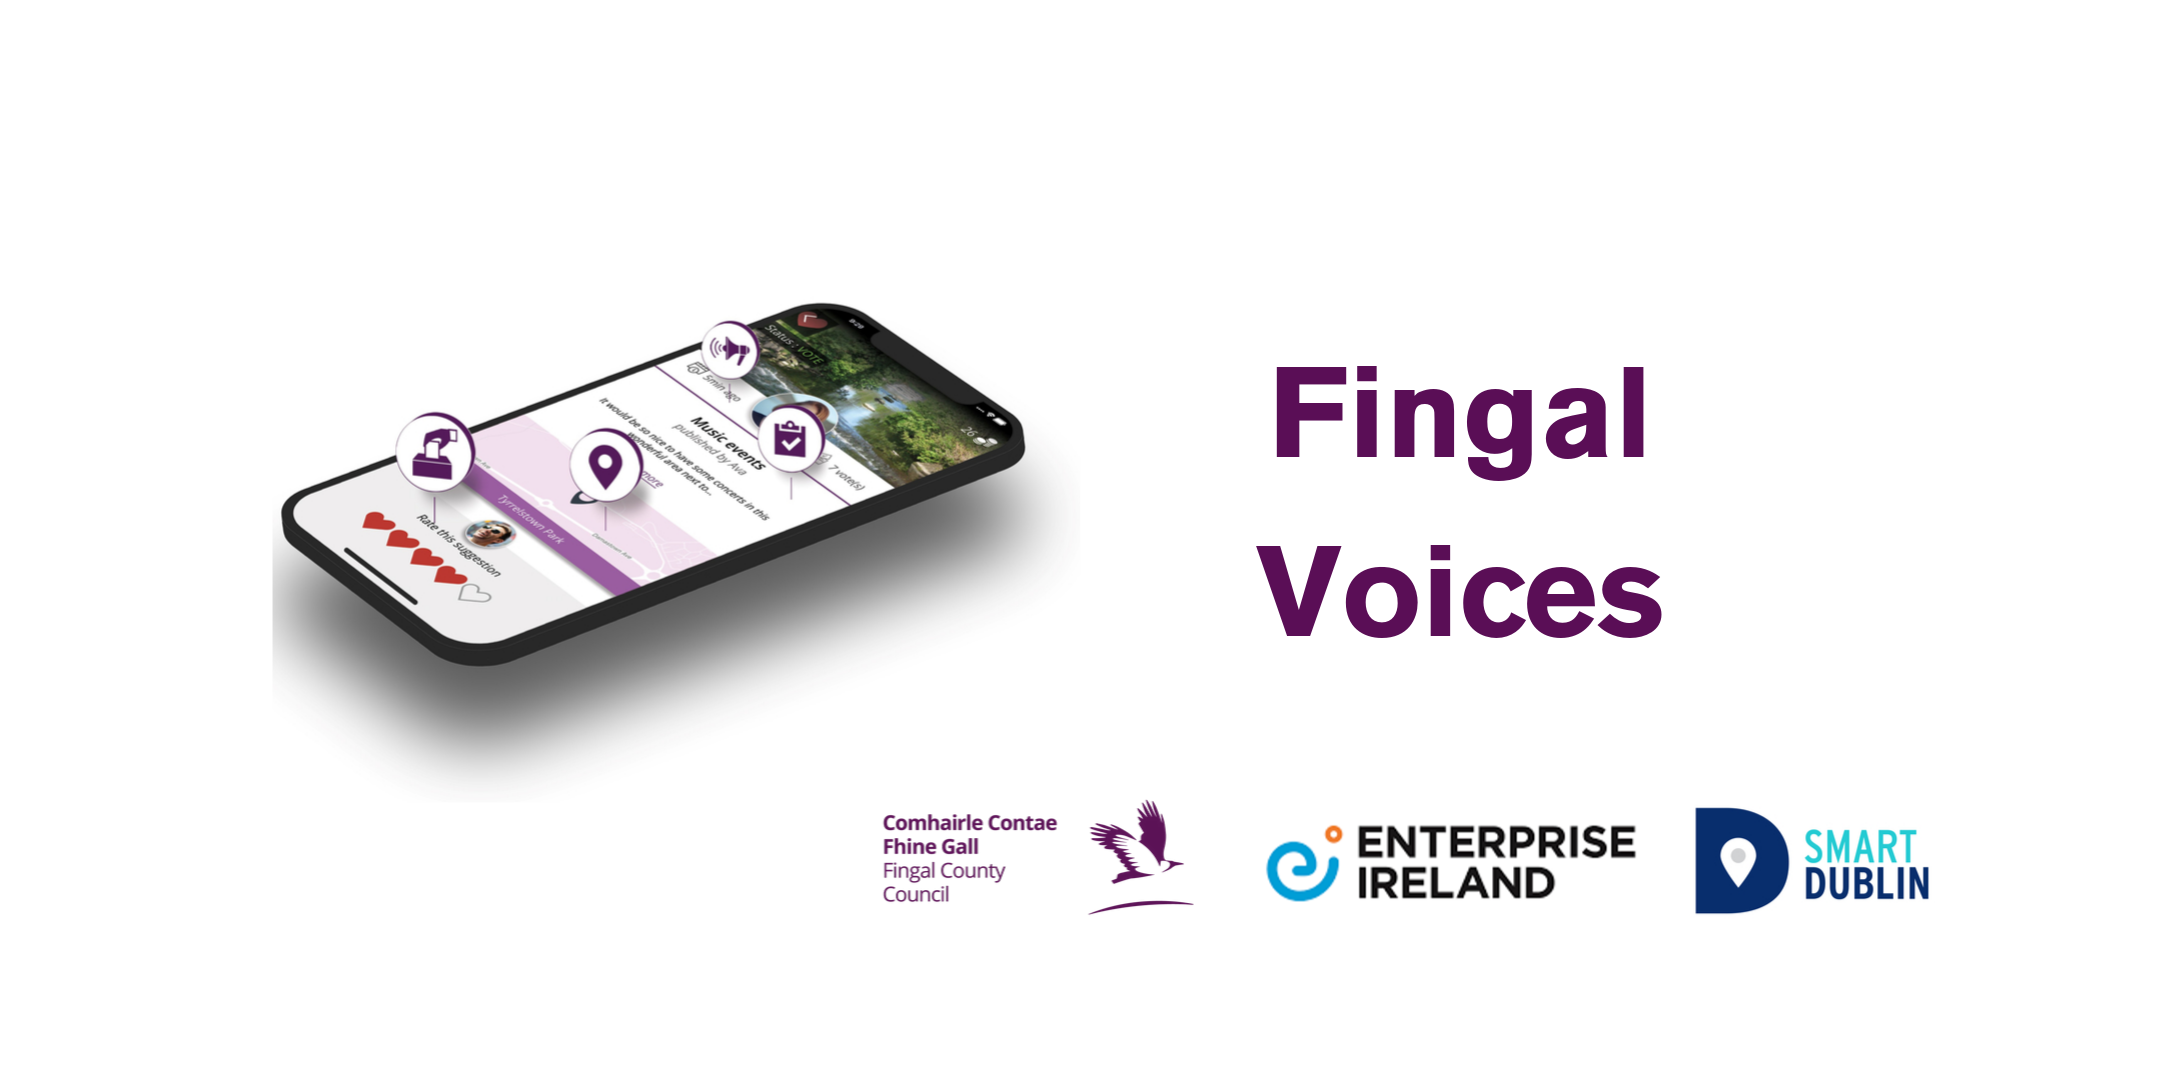 Fingal Voices Launch - Smart Dublin